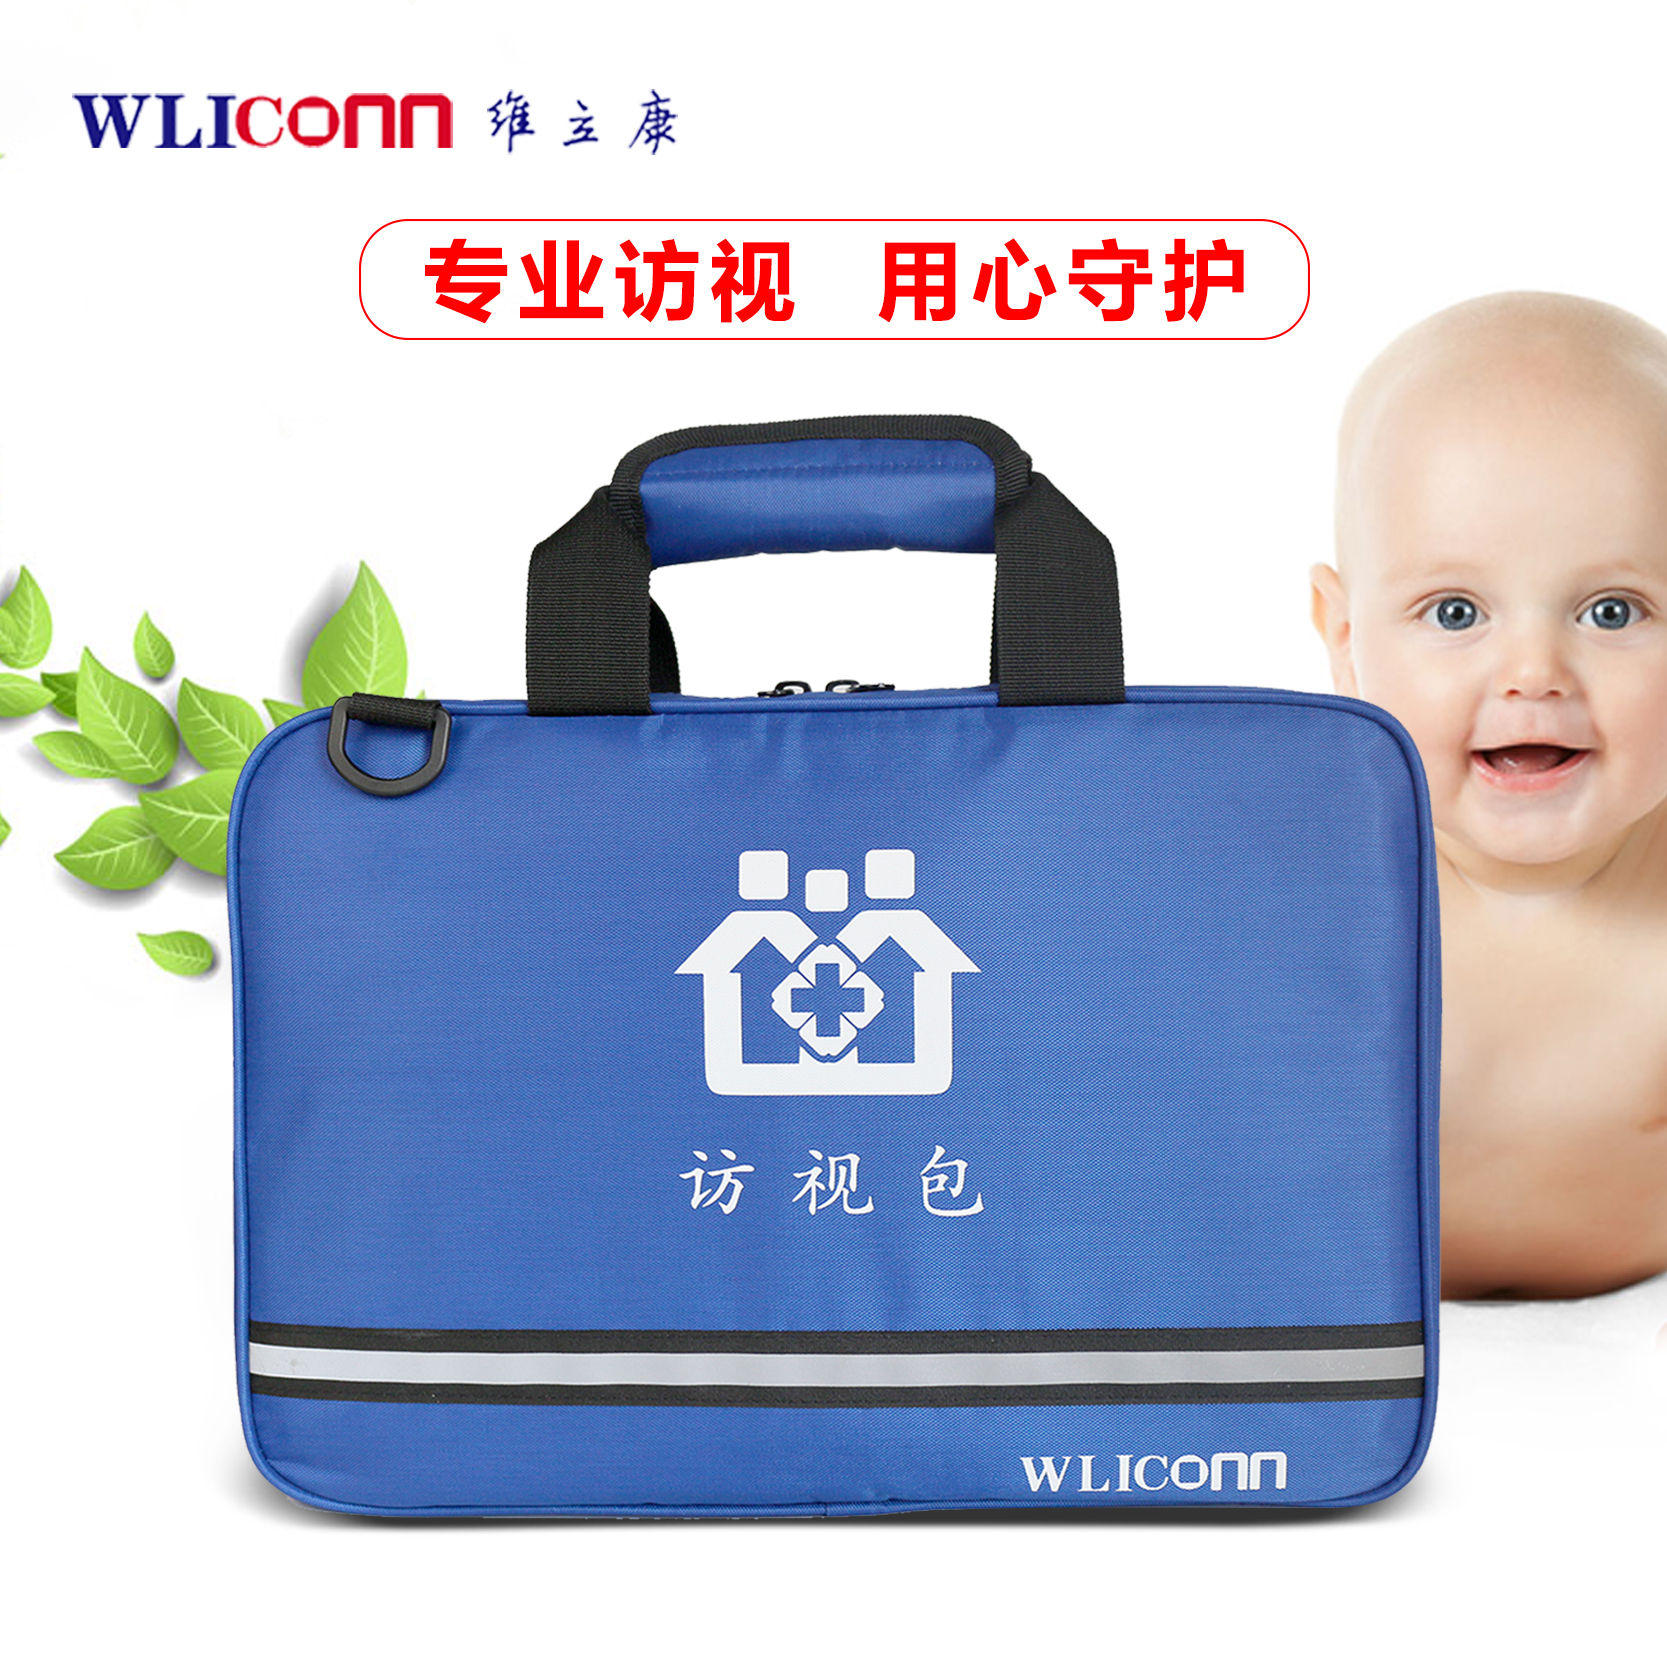 Newborn Babies Online Shopping Usd 21 79 Postpartum Visit Package Community Health Follow